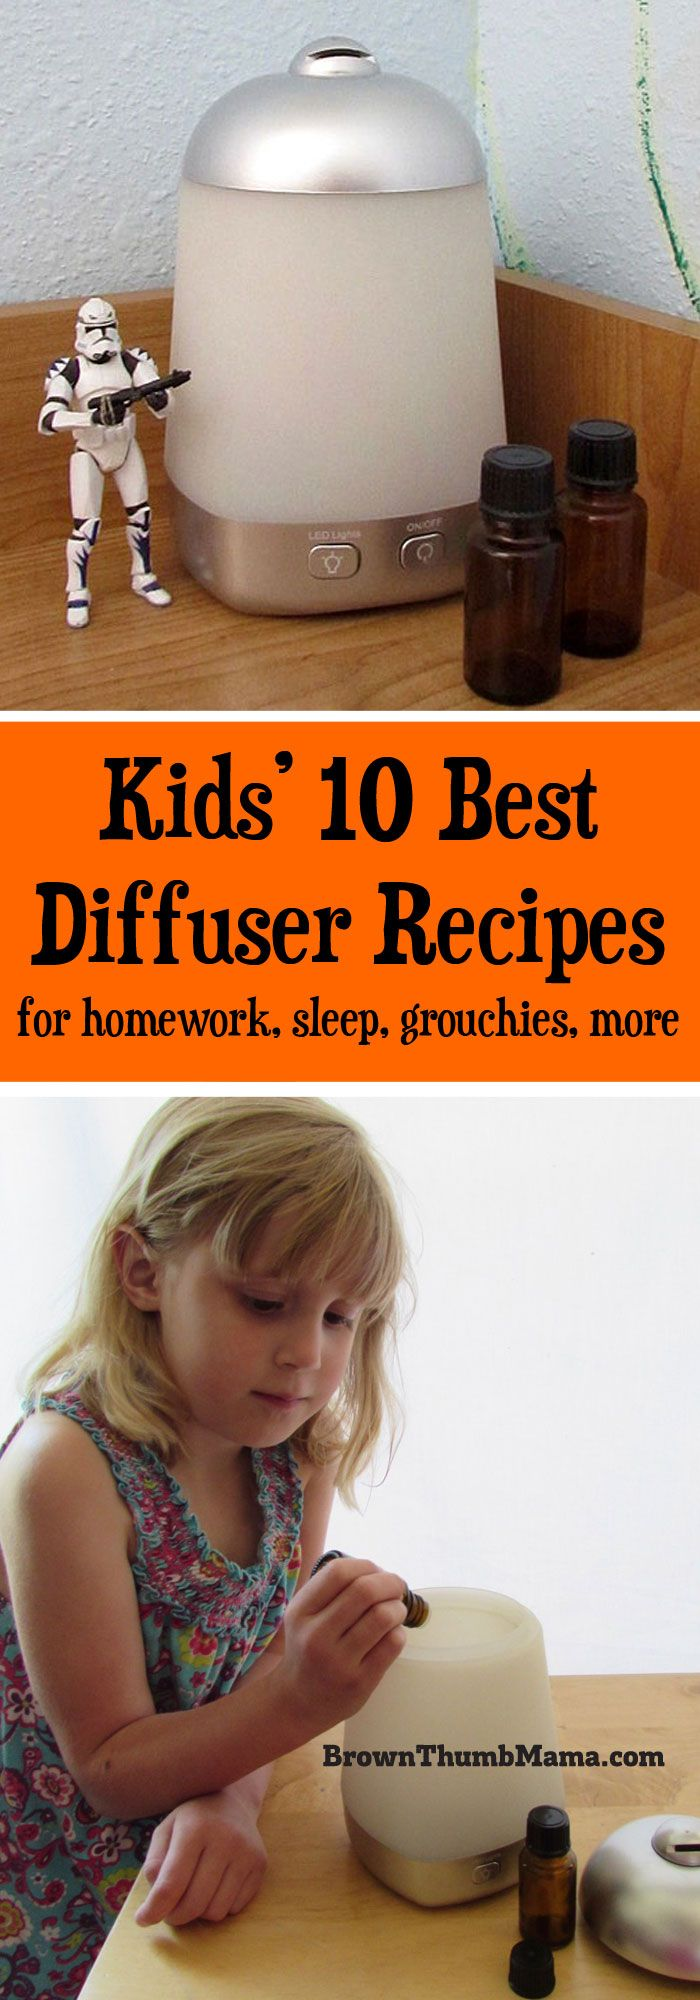 Kids love essential oils! These are the 10 best #diffuser recipes for #kids. These blends help at homework time, for #sleep, grouch-busting, and more.